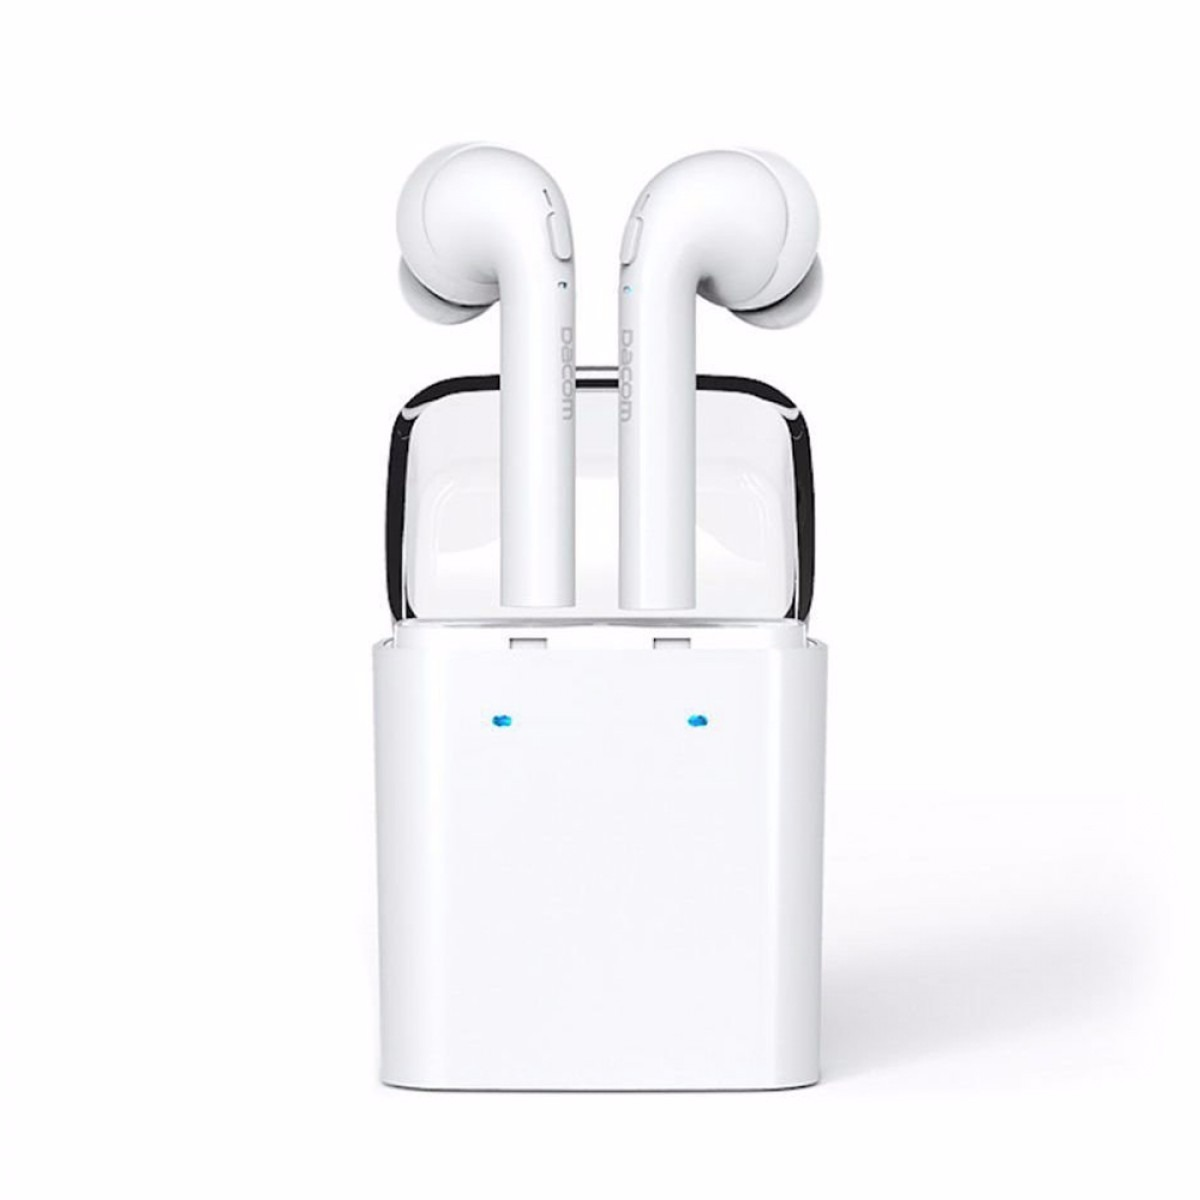 audifonos inalambricos dacom airpods iphone android. Black Bedroom Furniture Sets. Home Design Ideas